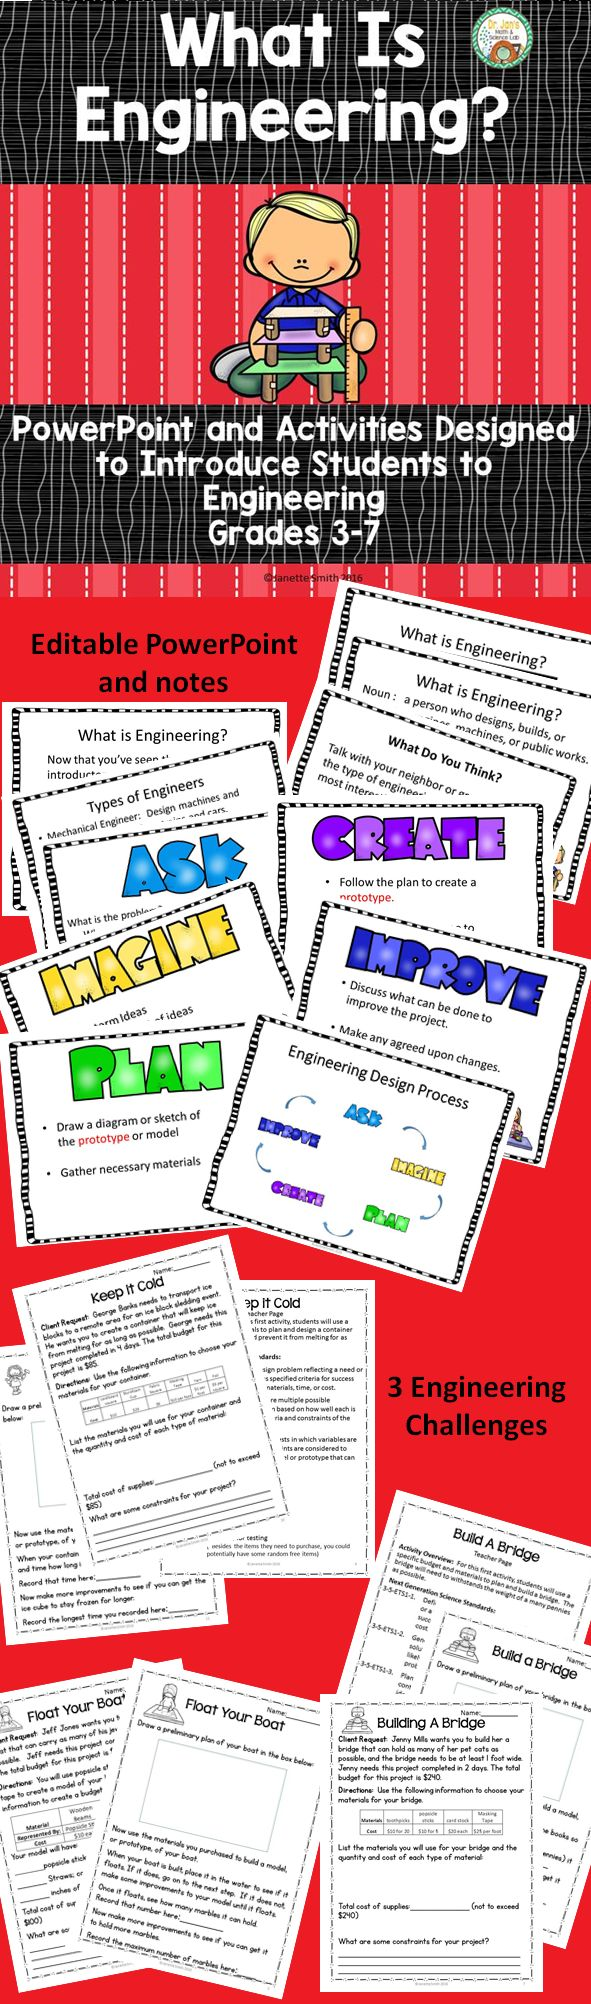 Give your students the necessary background knowledge to successfully complete engineering design challenges.  Editable PowerPoint with notes gives students background on what engineering is, different types of engineering and the engineering design process.  Also included are 3 activities for students to apply this new knowledge.  Aligned to NGSS.